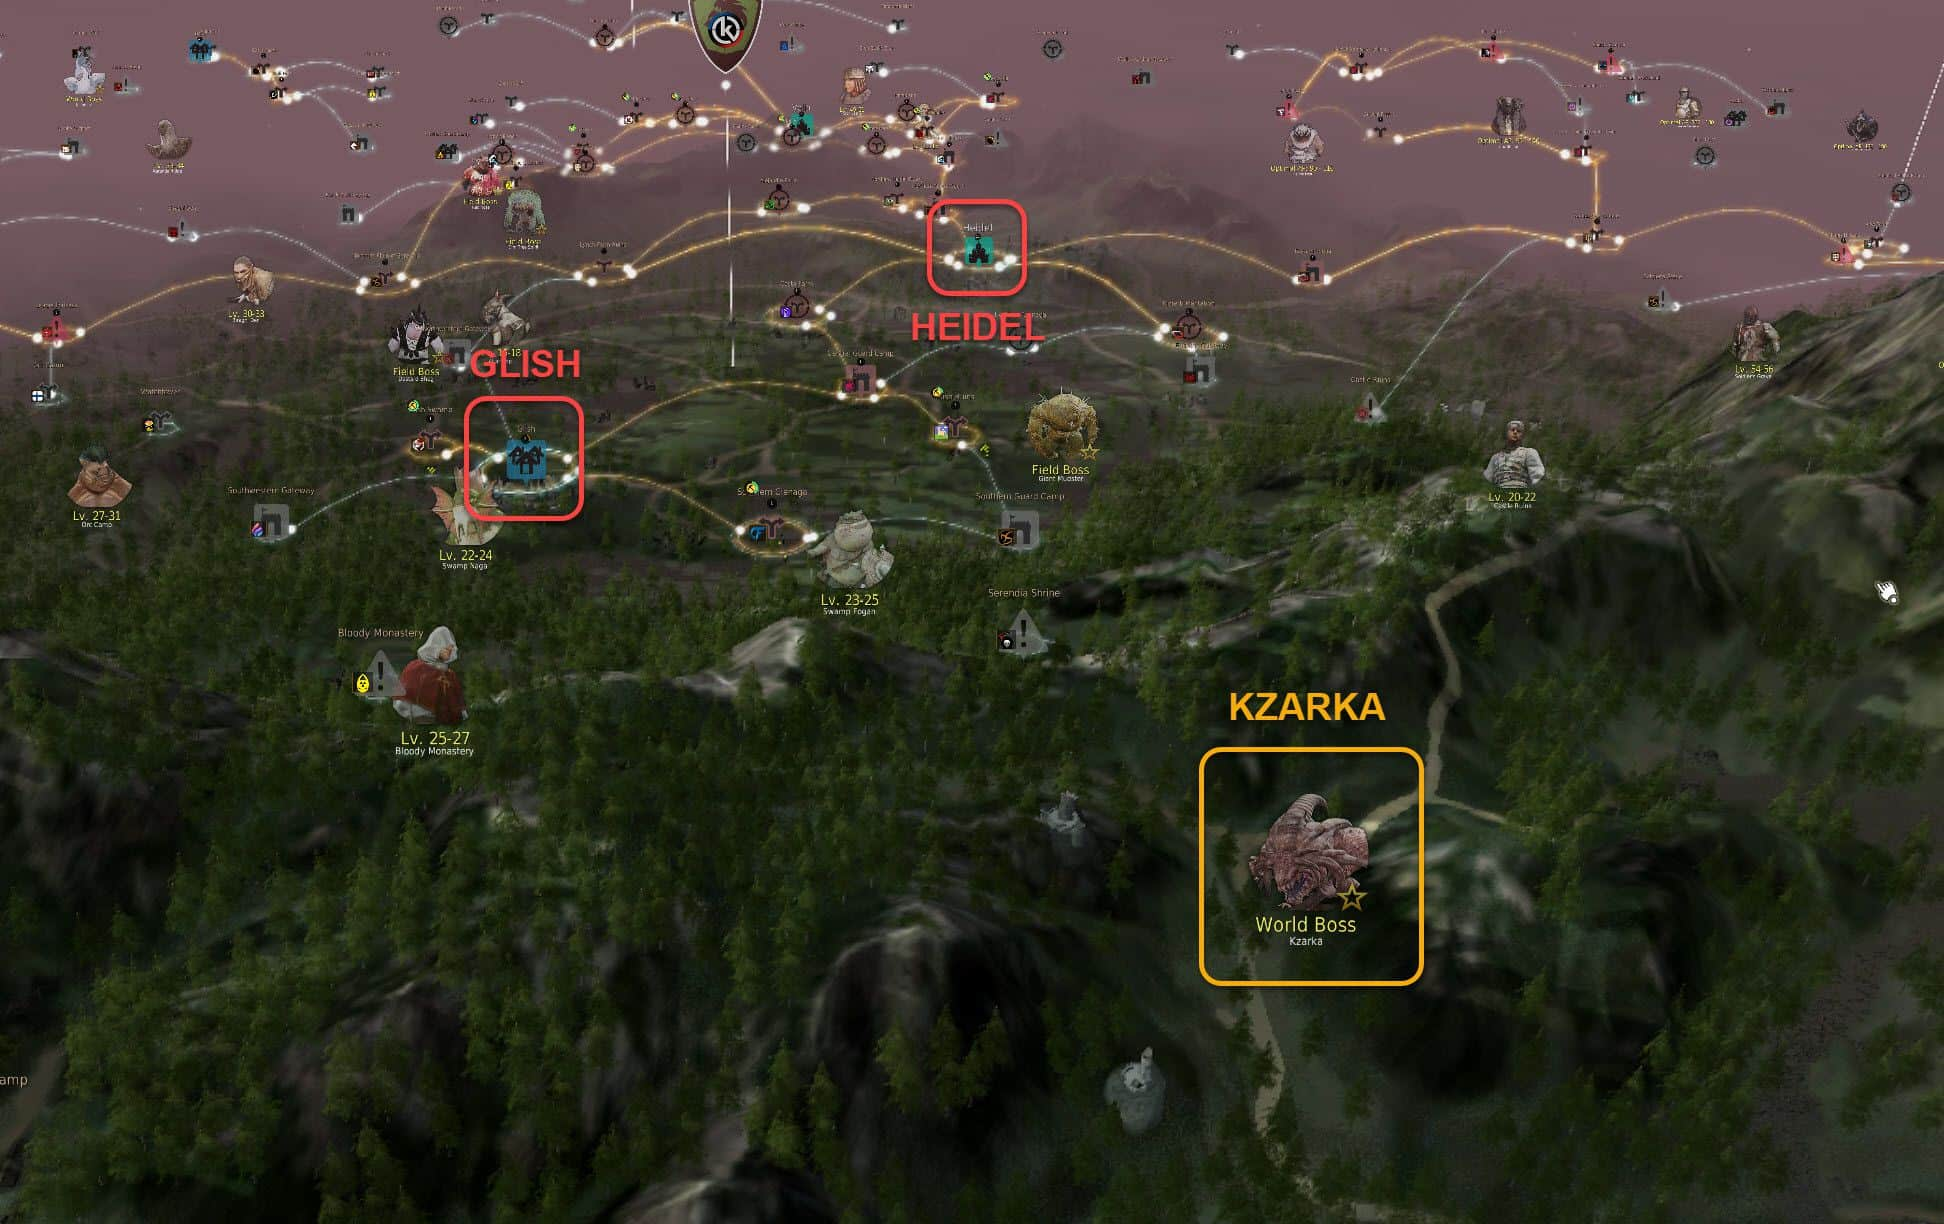 Kzarka Spawn Location, World Boss, Black Desert Online